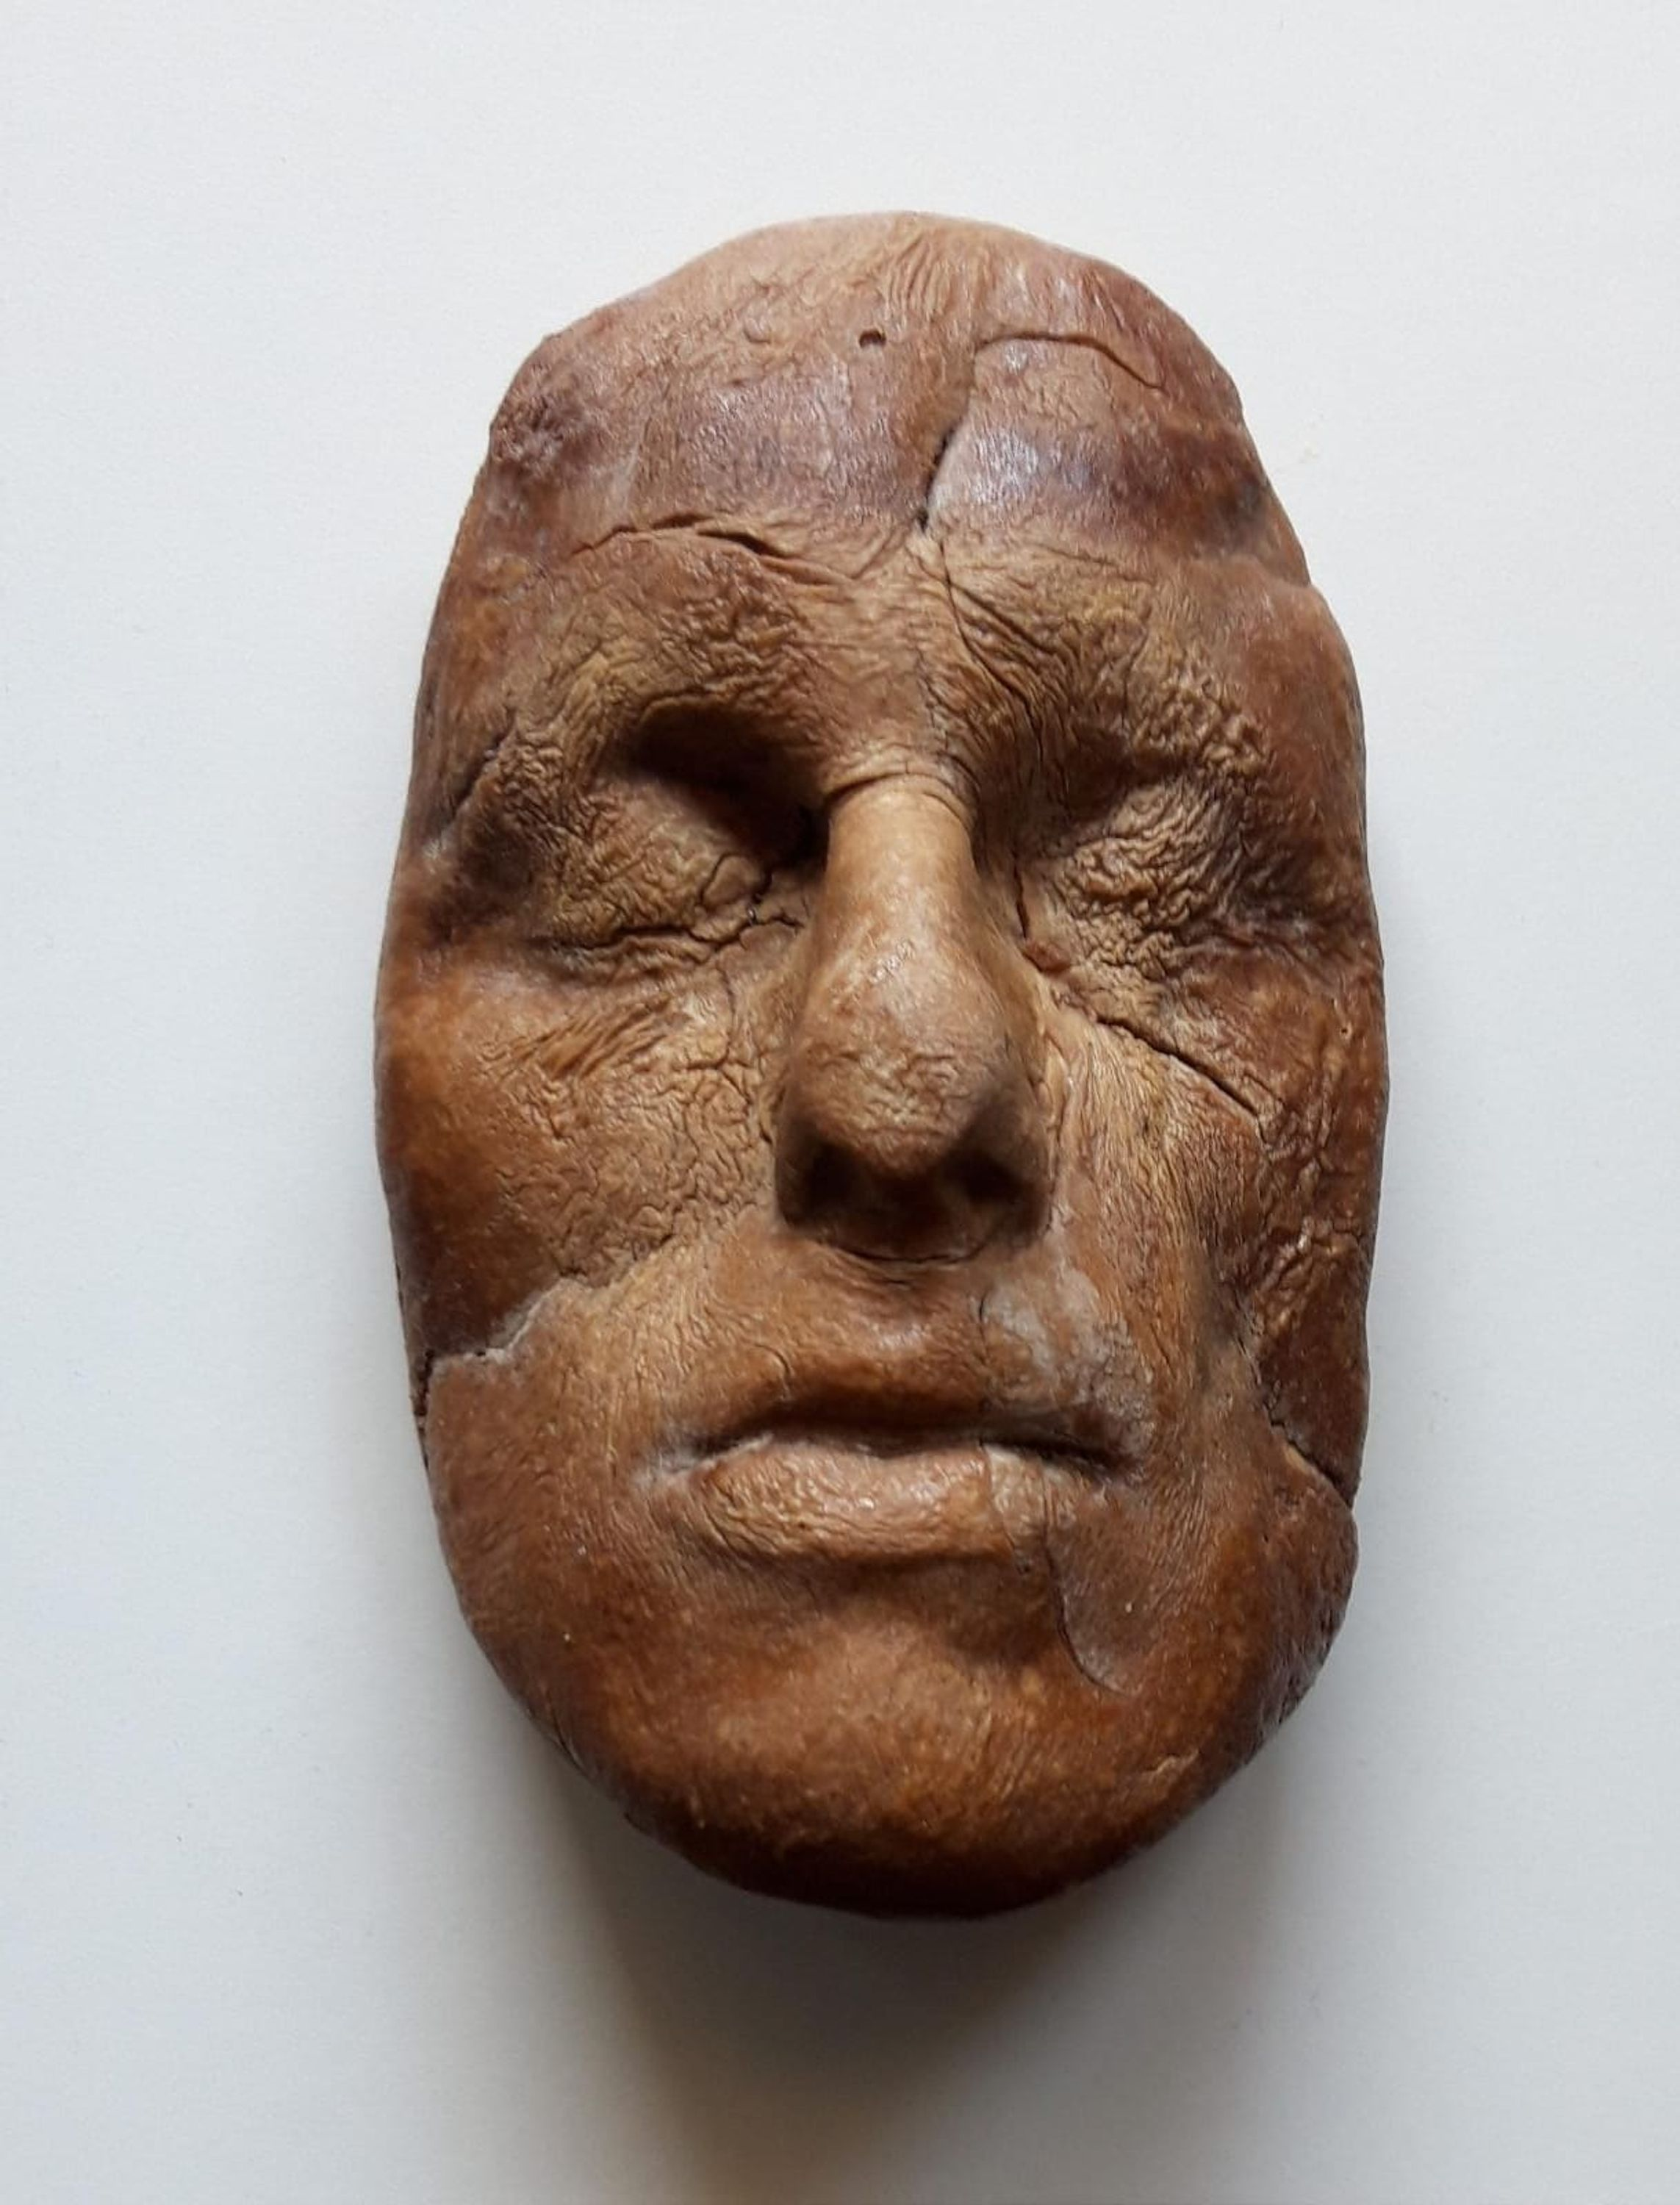 Volto 1 (face1) by Matteo Lucca, Luisa Catucci Gallery